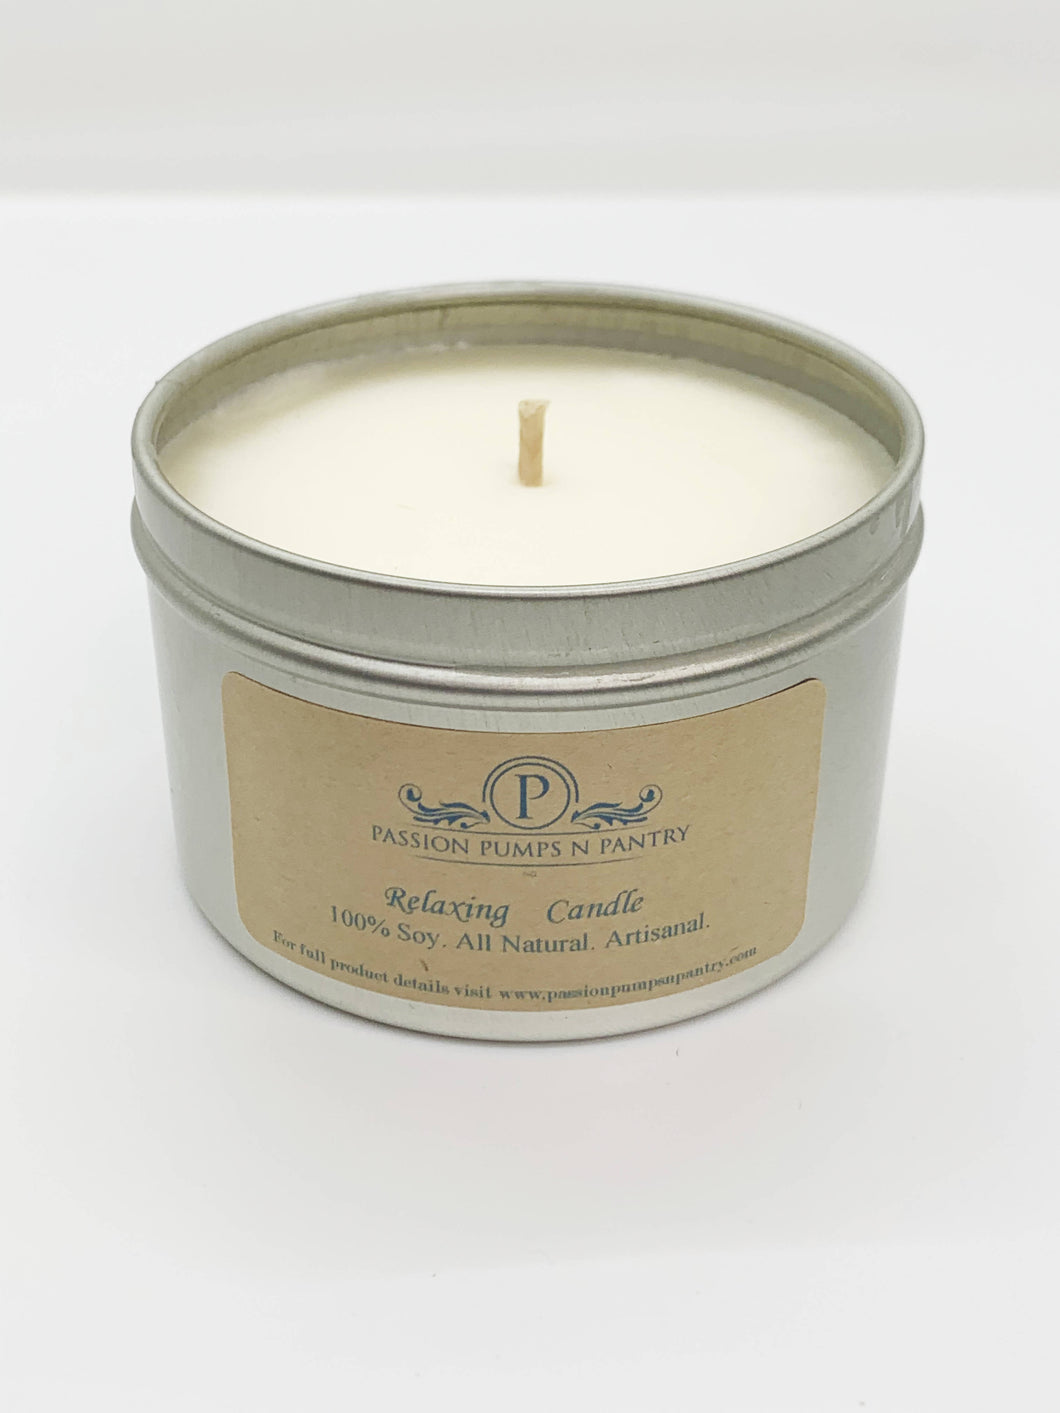 Passion Pumps N Pantry 8 oz Candle